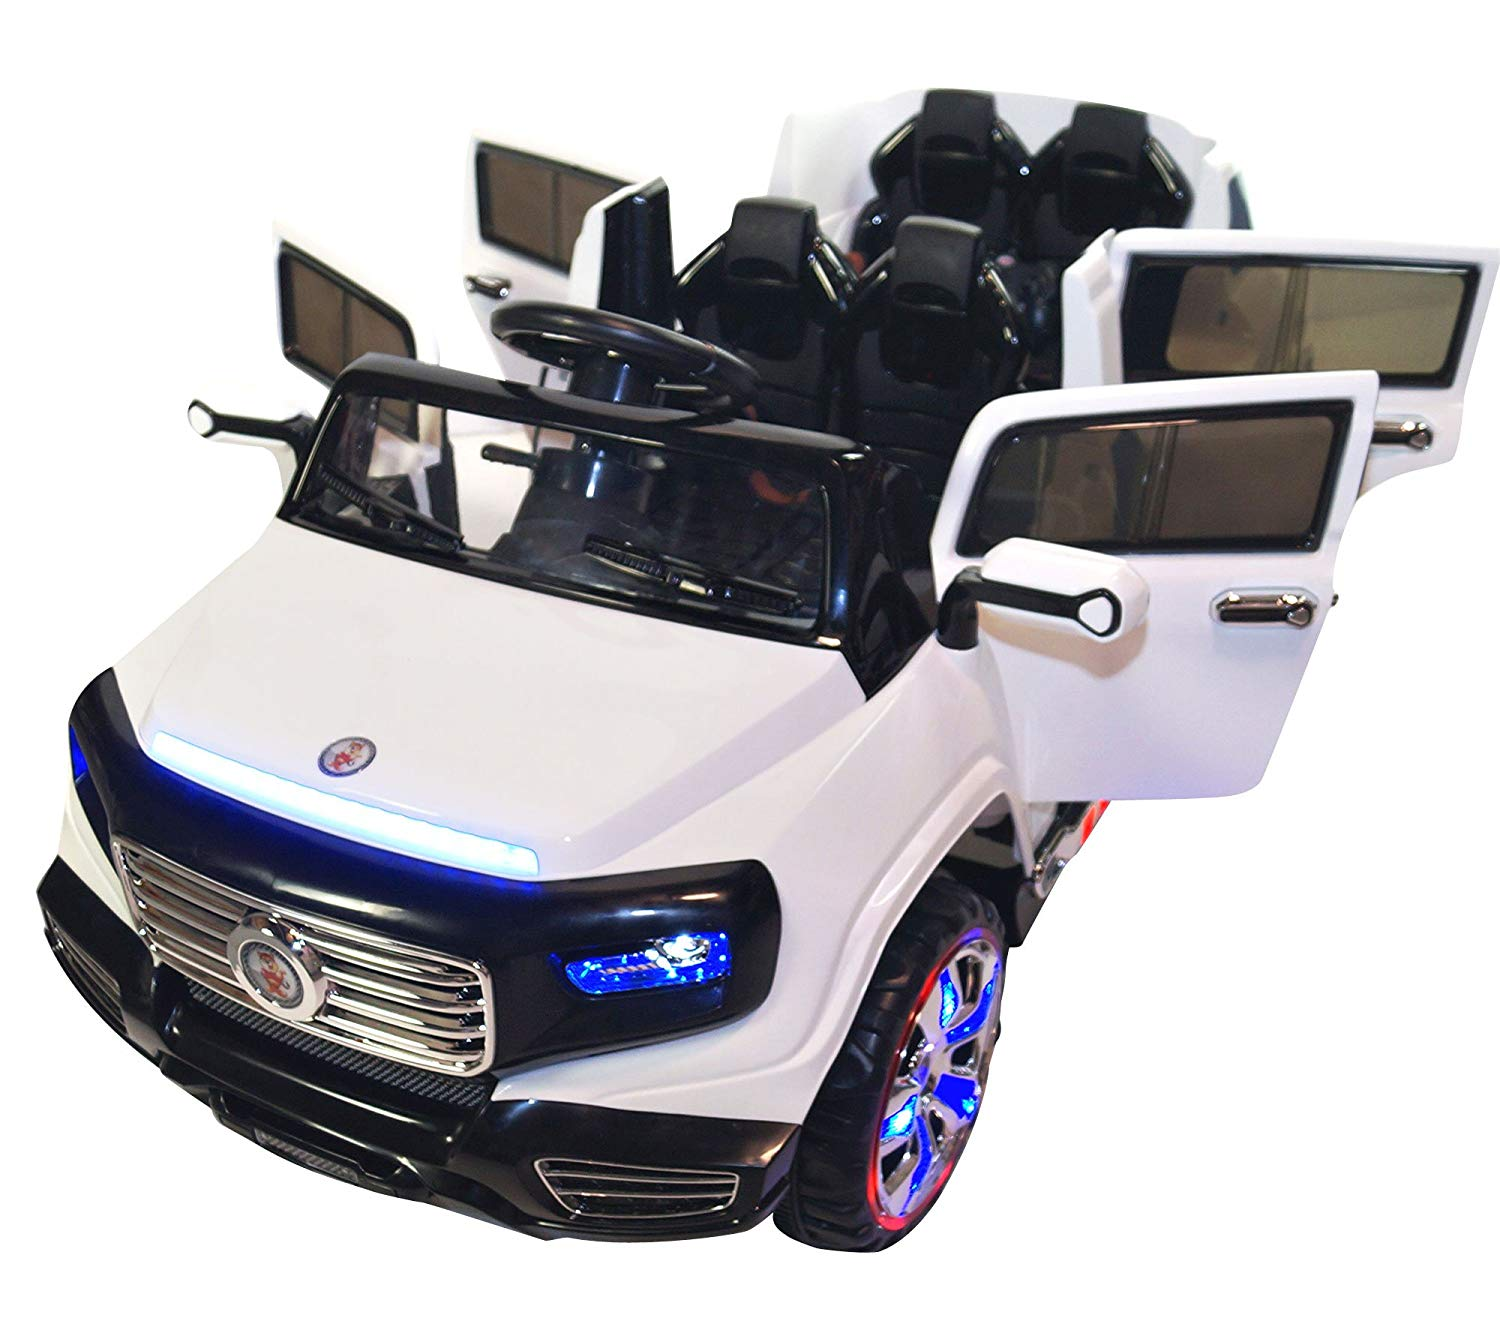 Car For Kids >> Two Seater 4 Door Premium Ride On Electric Toy Car For Kids 12v Battery Powered Led Lights Mp3 Rc Parental Remote Controller Suitable For